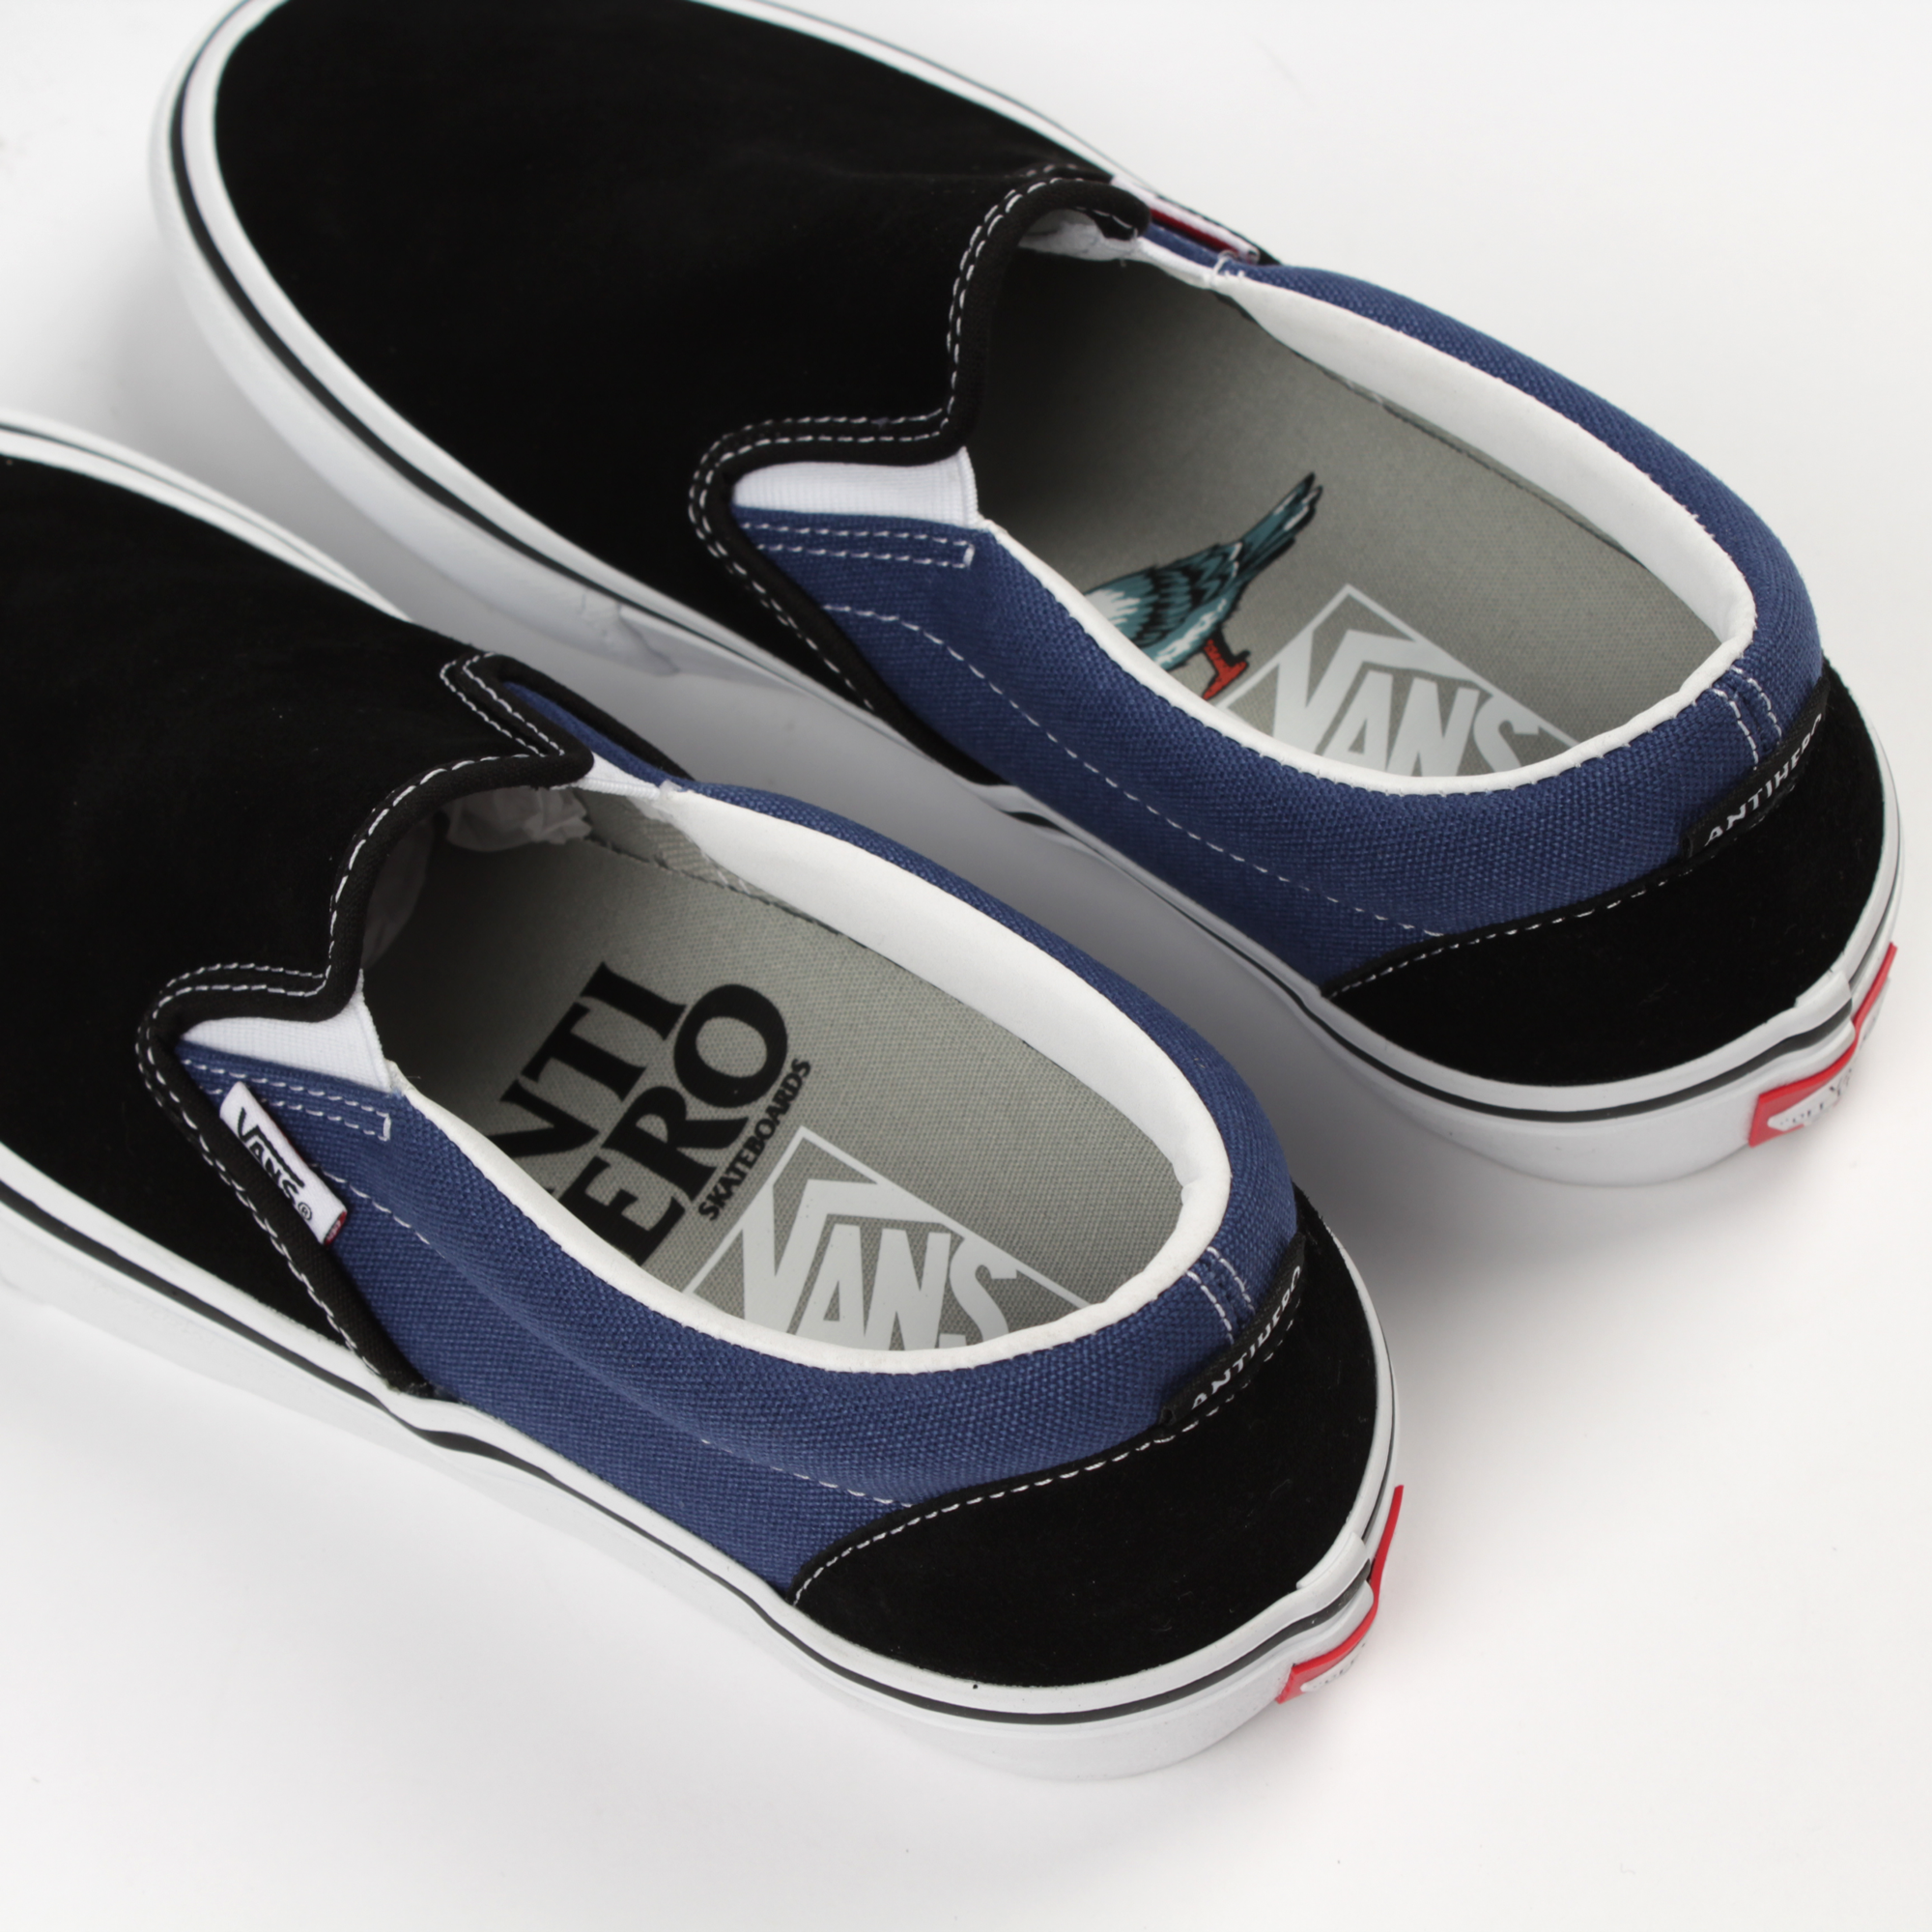 Vans X Antihero Slip-On Pro Product Photo #3